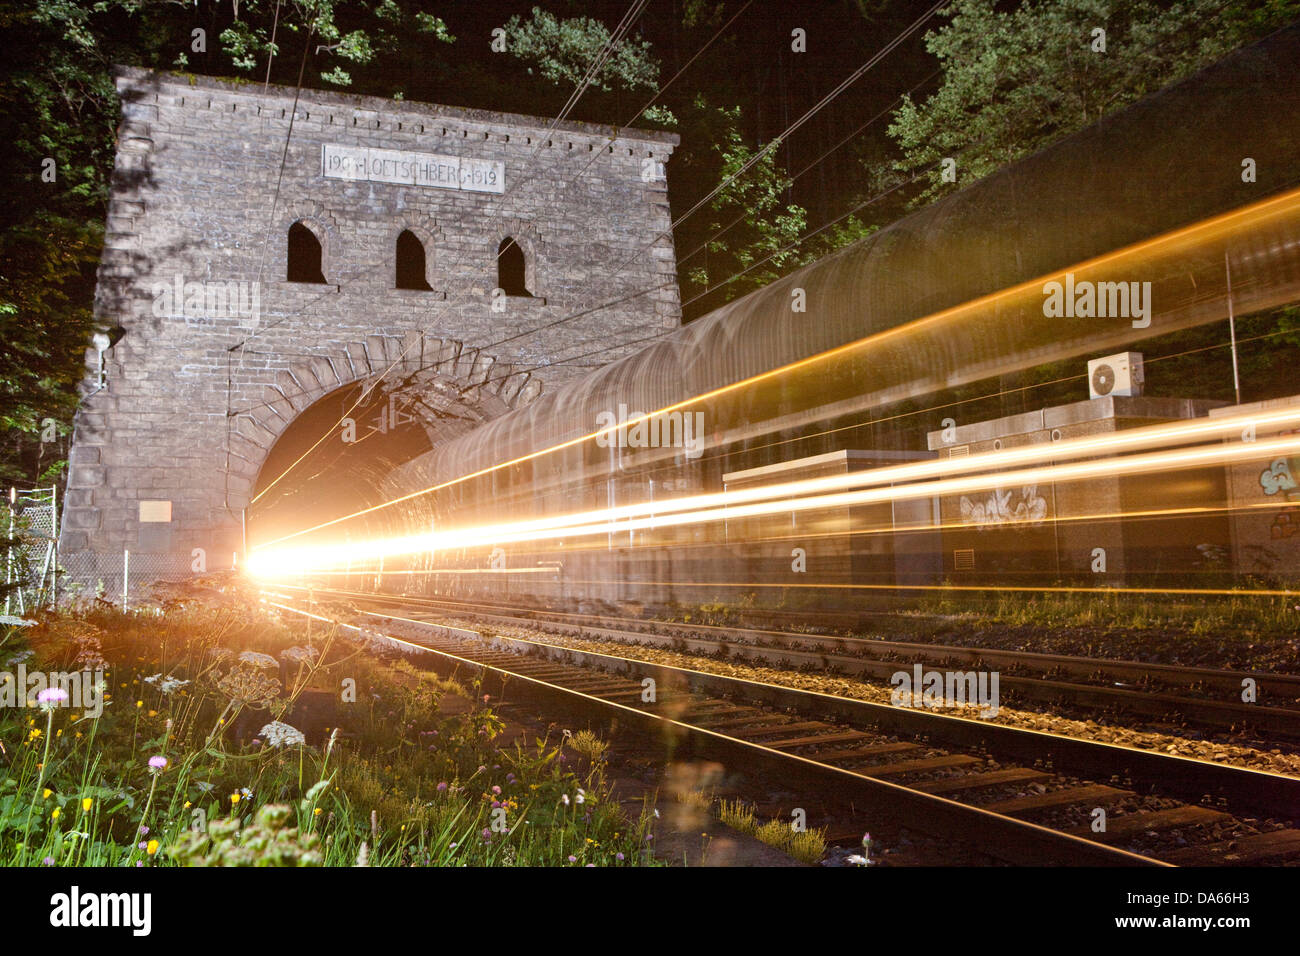 North main entrance, tunnel, Kandersteg, road, railway, train, railroad, Lötschberg, BLS, Switzerland, Europe, - Stock Image